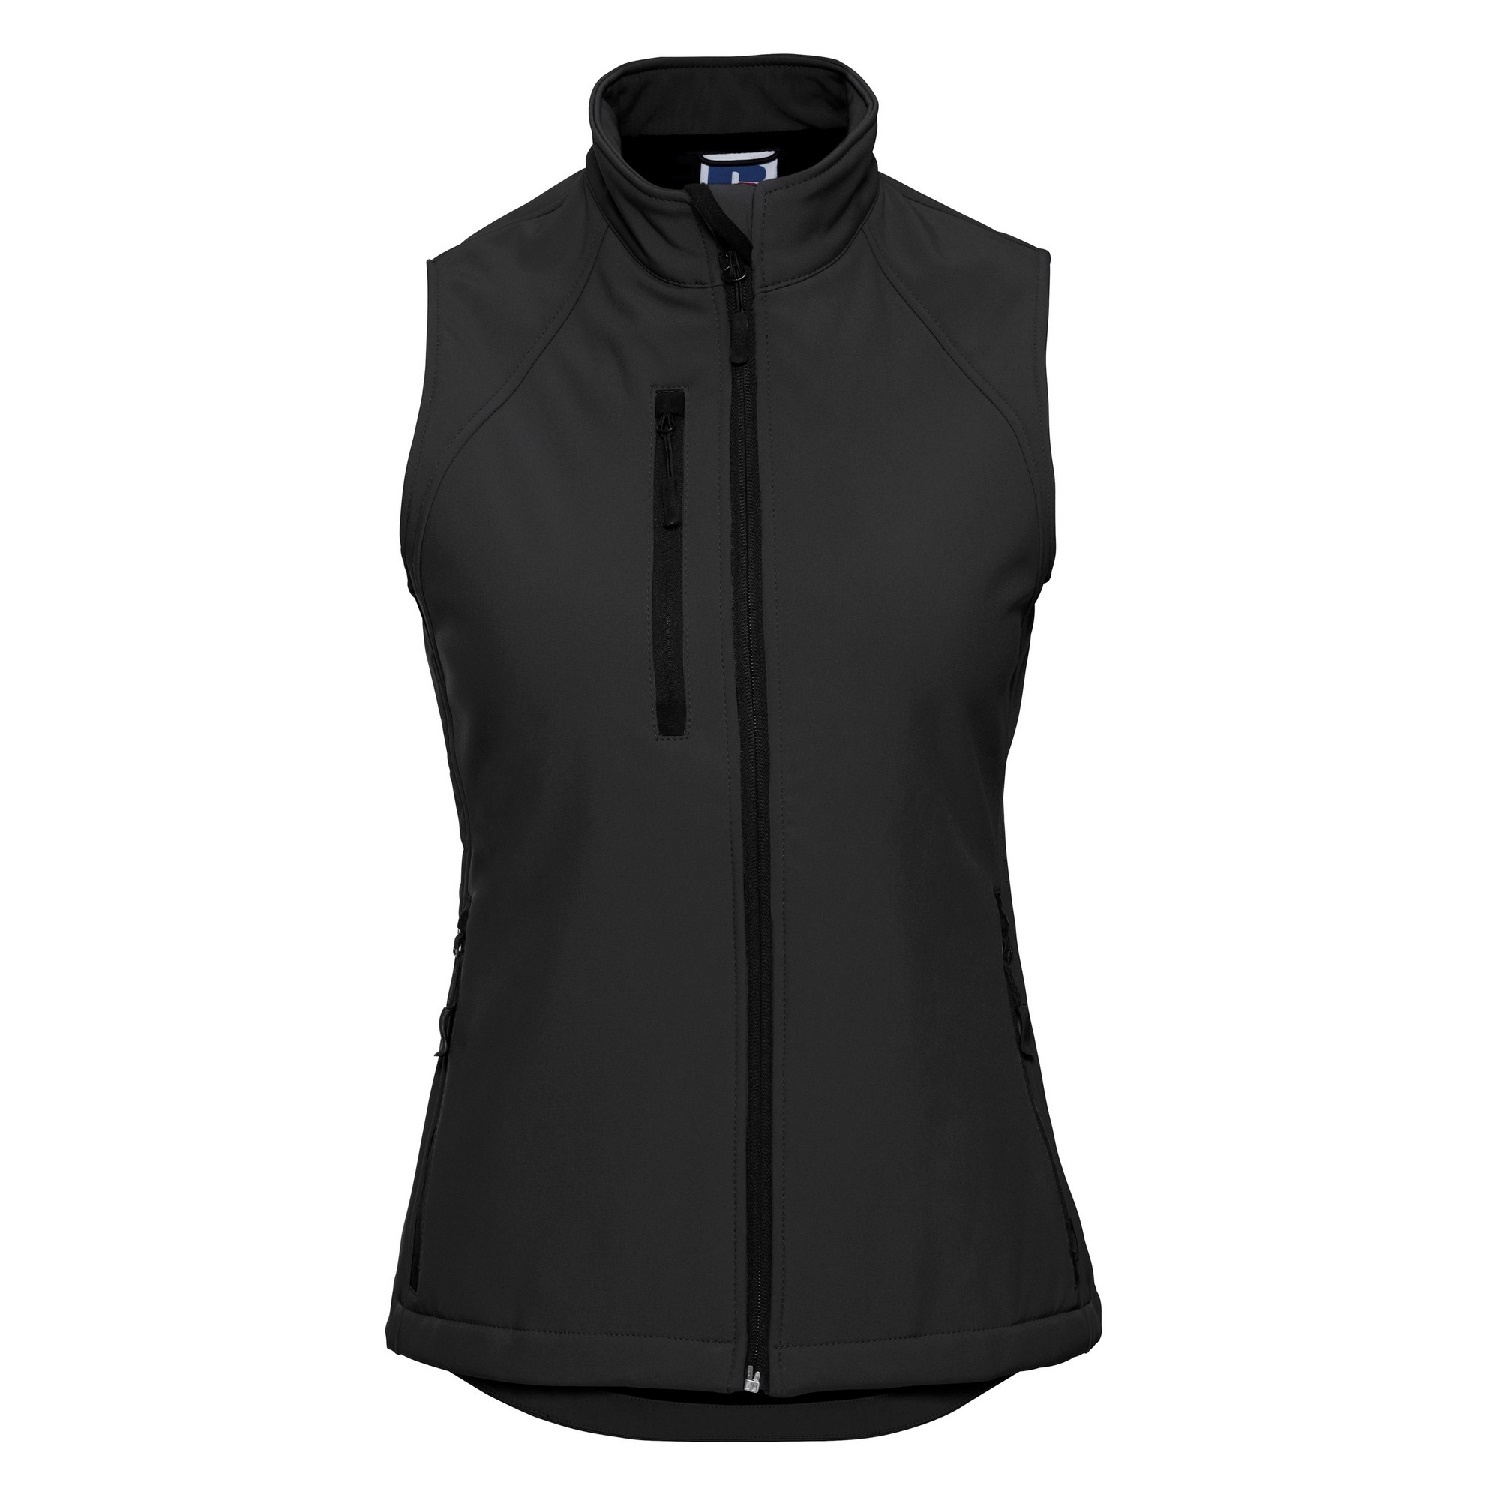 Russell Ladies/Womens Soft Shell Breathable Gilet Jacket (S) (Black)